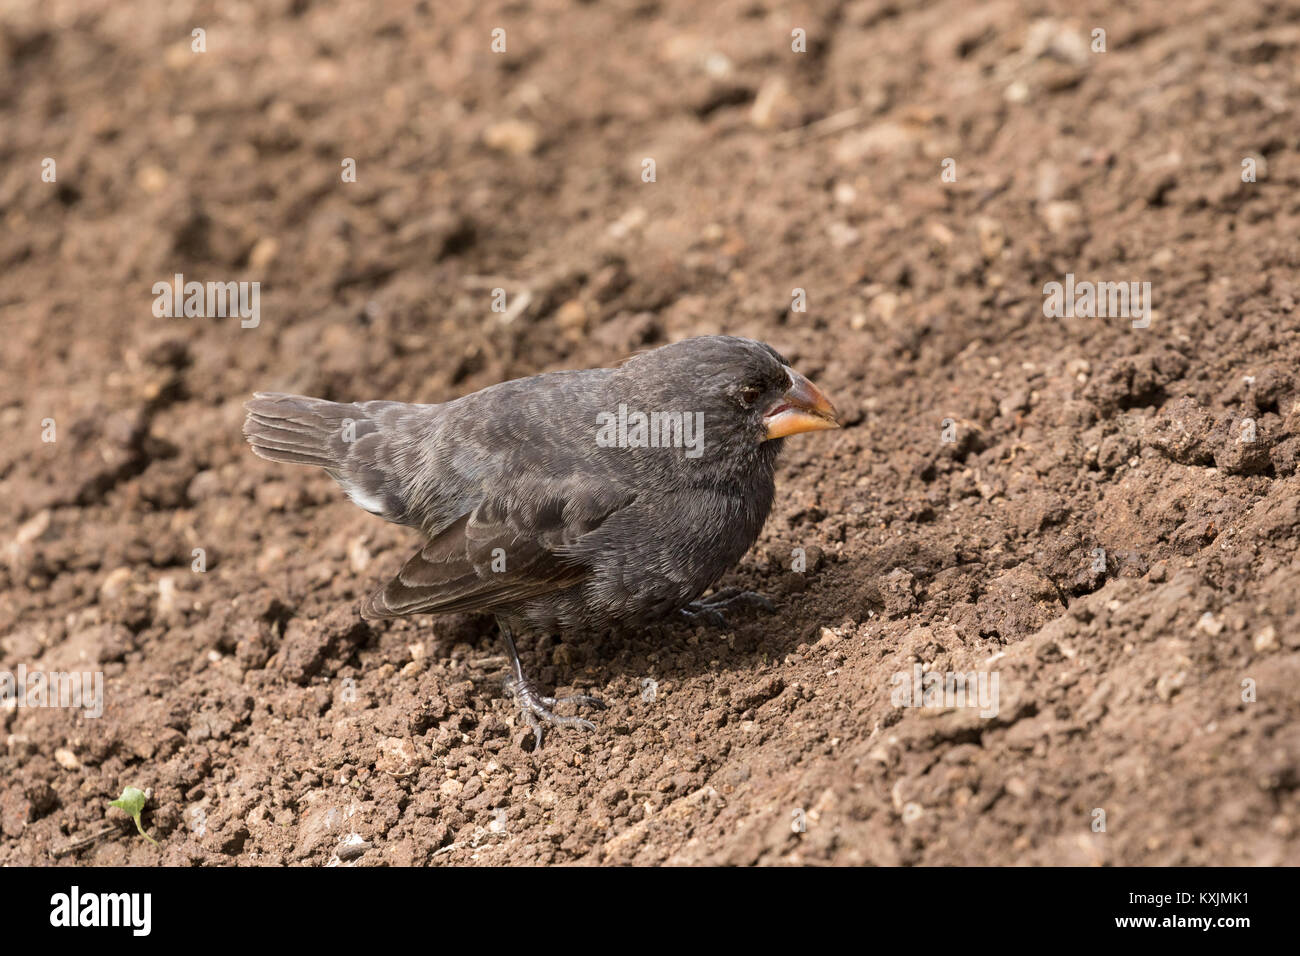 Small ground finch,( Geospiza fuliginosa ), a Darwin Finch, Espanola Island, Galapagos Islands Ecuador South America - Stock Image